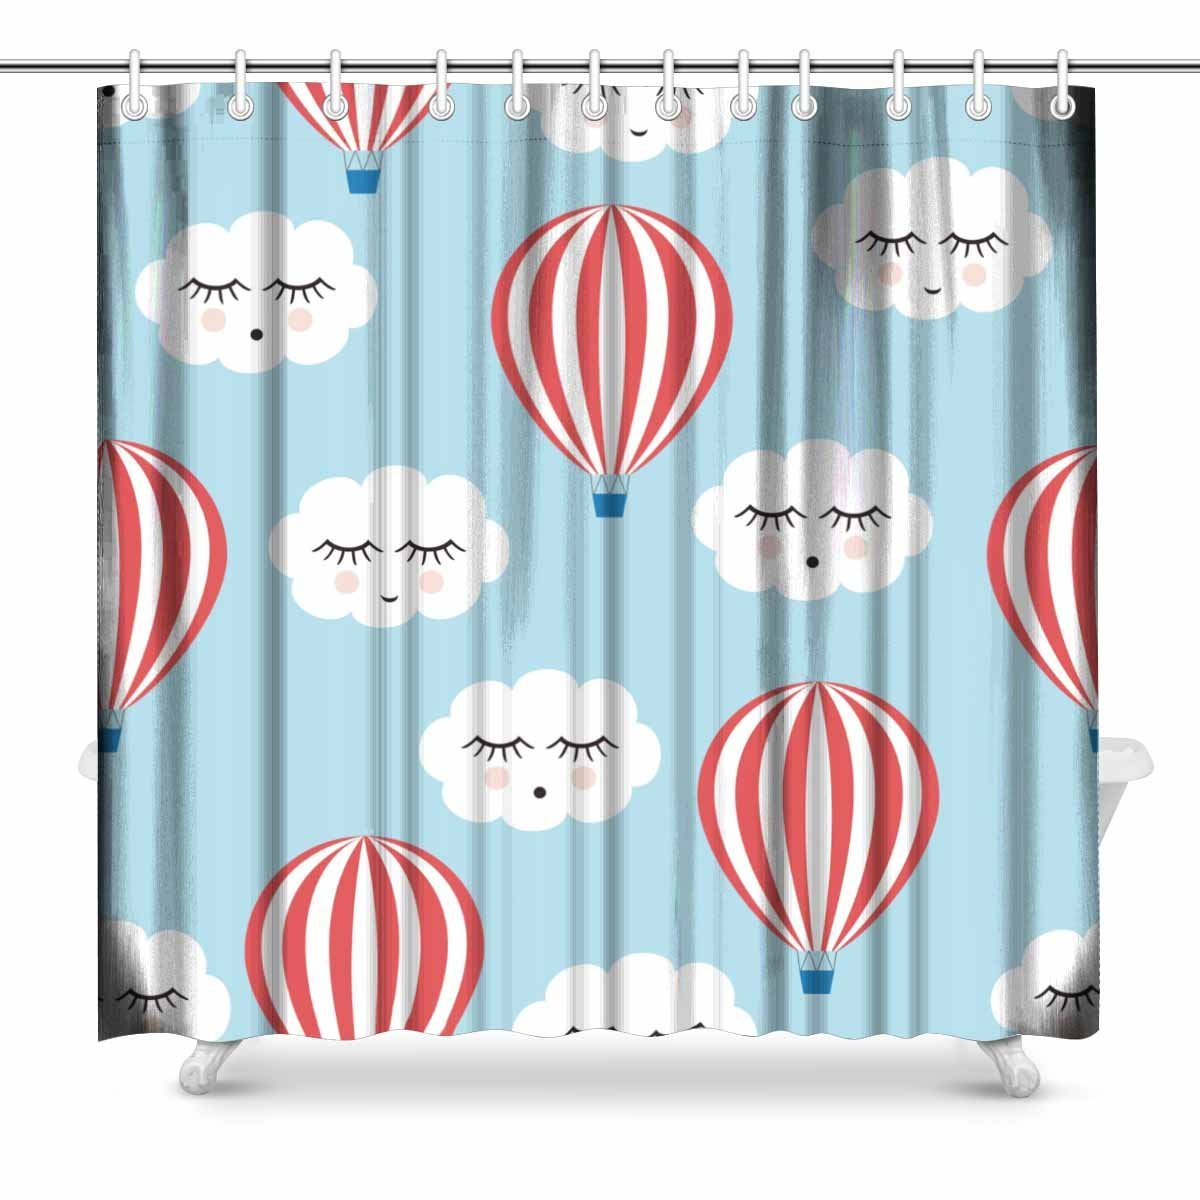 Air Curtain Shower Us 13 59 Aplysia Smiling Sleeping Clouds And Hot Air Balloons Country House Image Polyester Fabric Bathroom Shower Curtain Set 72 Inches In Shower